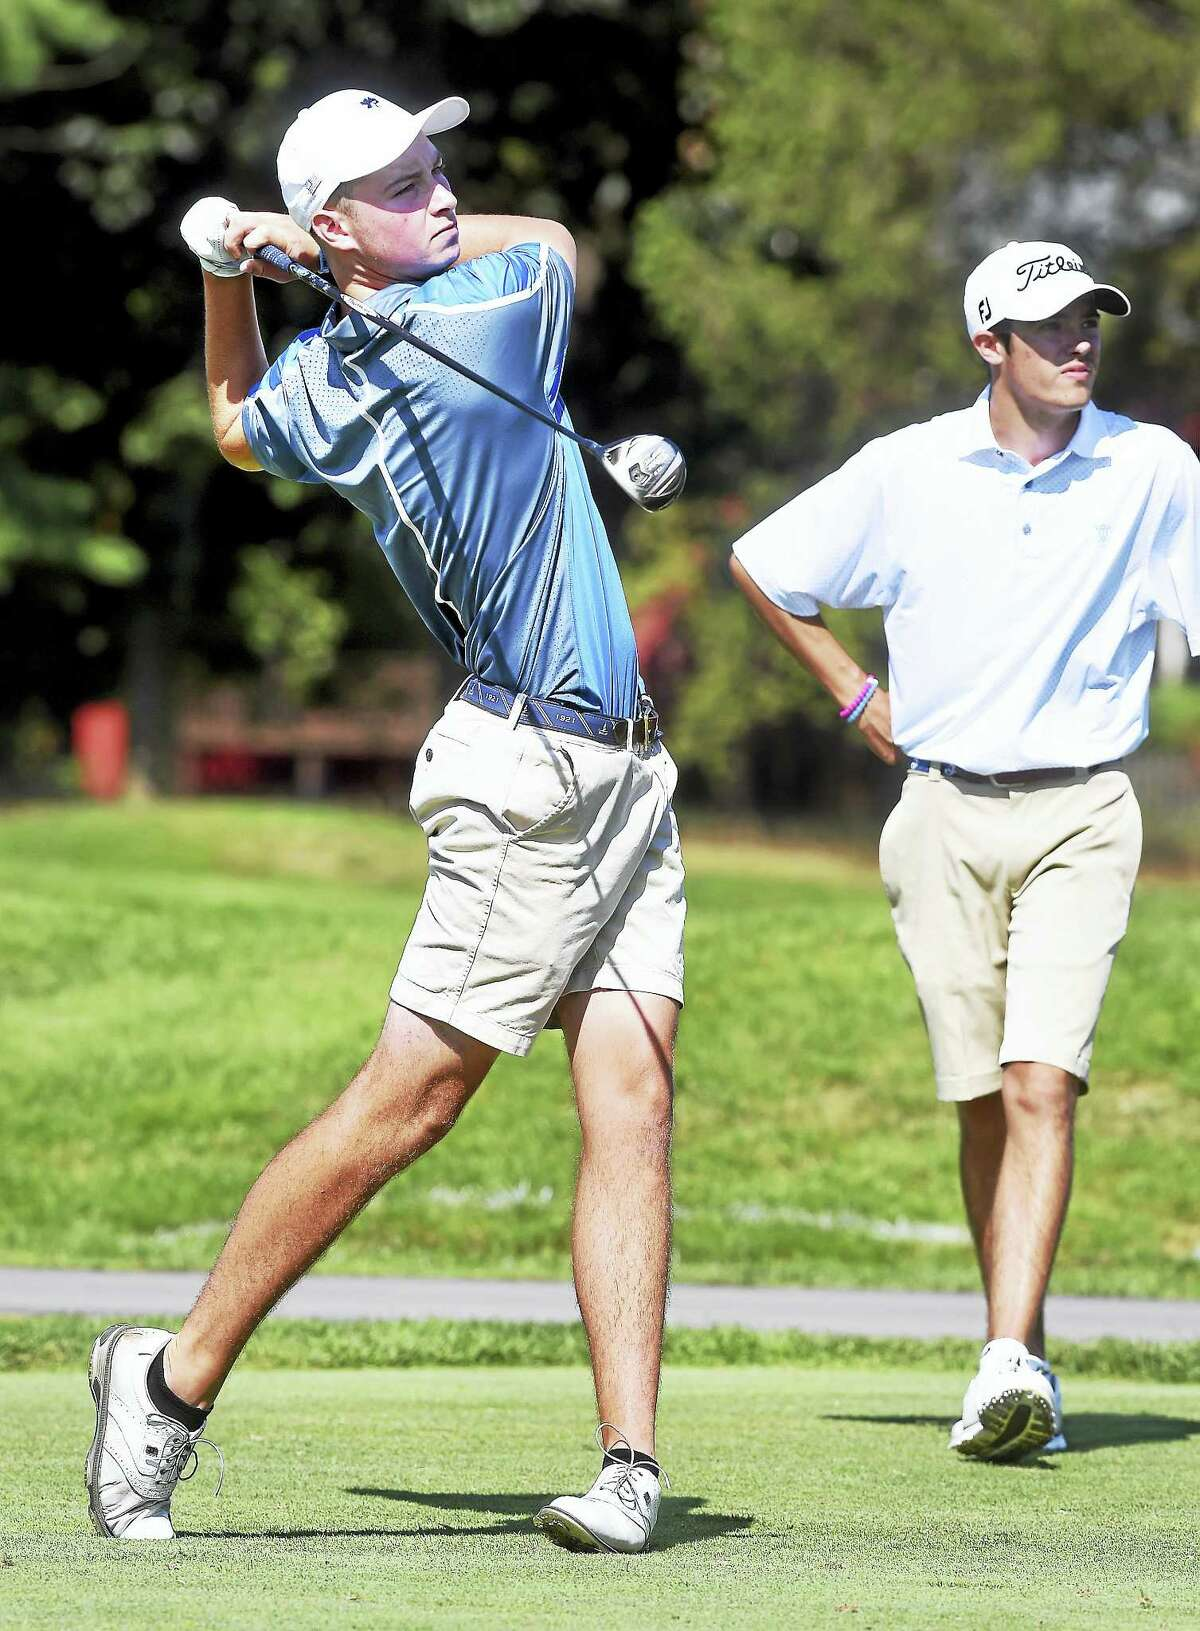 Mark Turner of Gloucester, Massachusetts, drives on the 8th hole of the 16th Northern Junior Championship at New Haven Country Club Wednesday. Turner birdied the last two holes to beat former high school teammate Christopher Francoeur, right, by a shot.